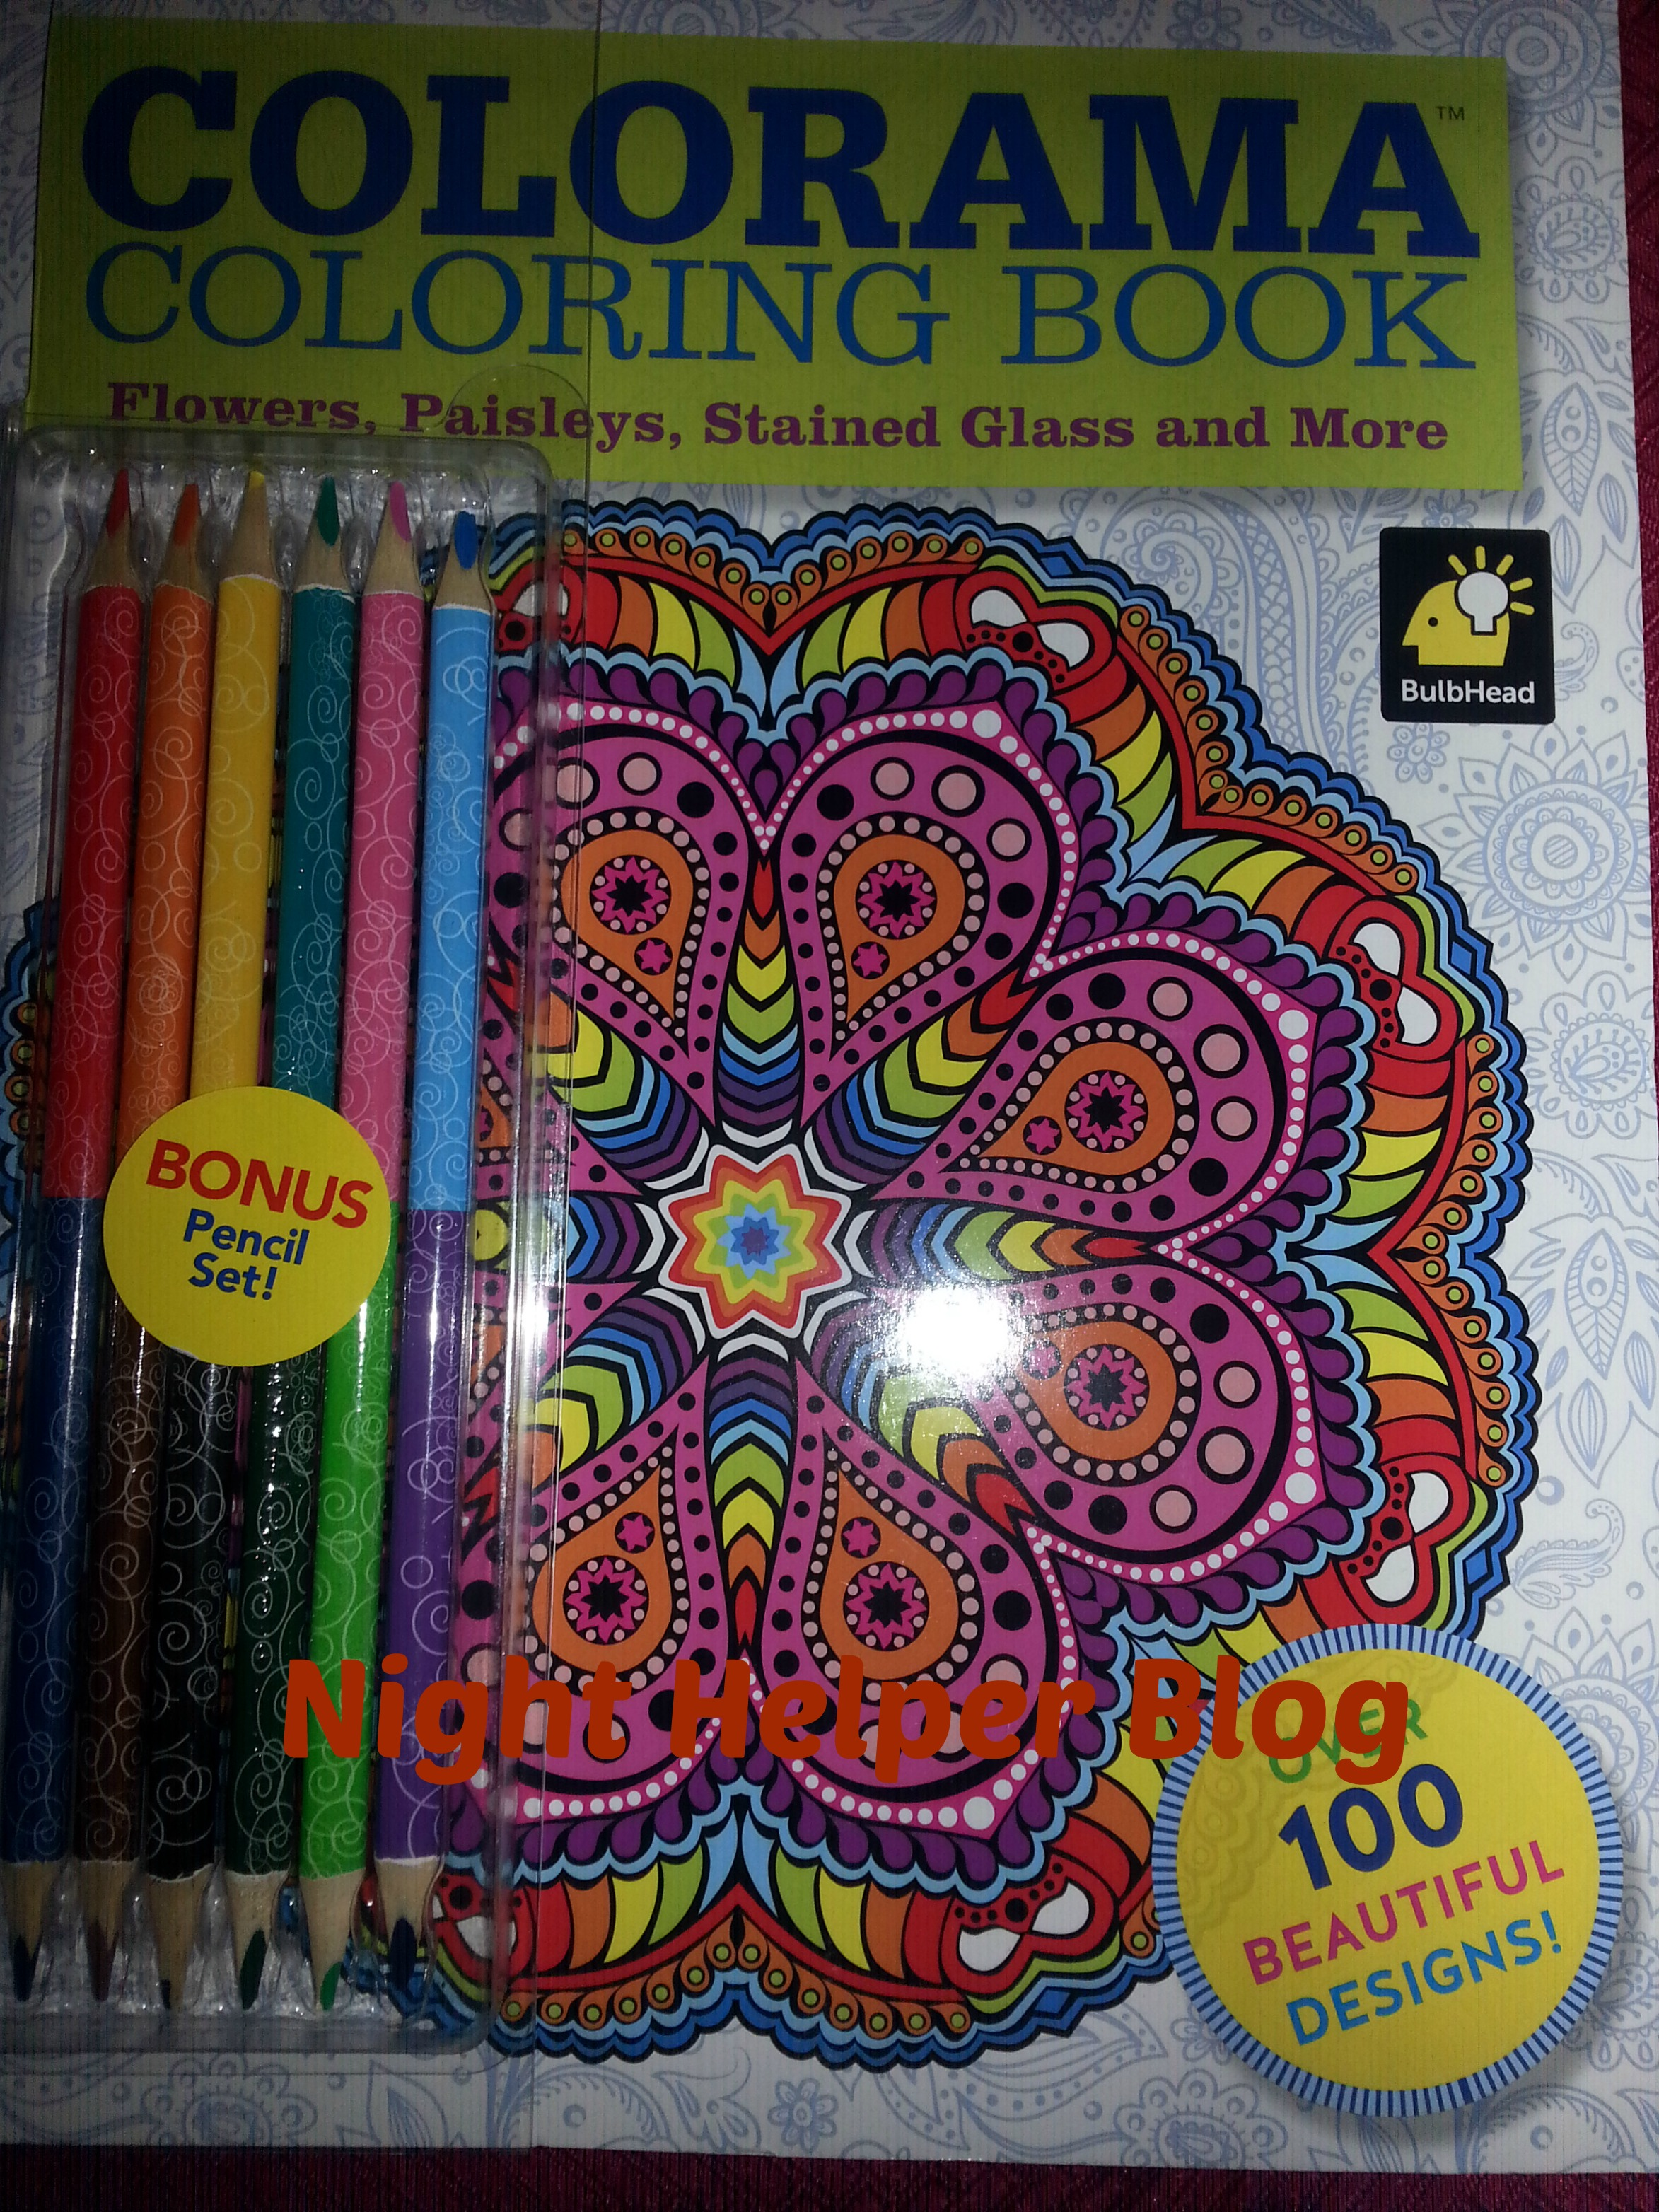 Dont Let Stress Get You Down Grab A Colorama Coloring Book Now To Help Distress And Relax All Day Long I Must Say Had Never Heard Of